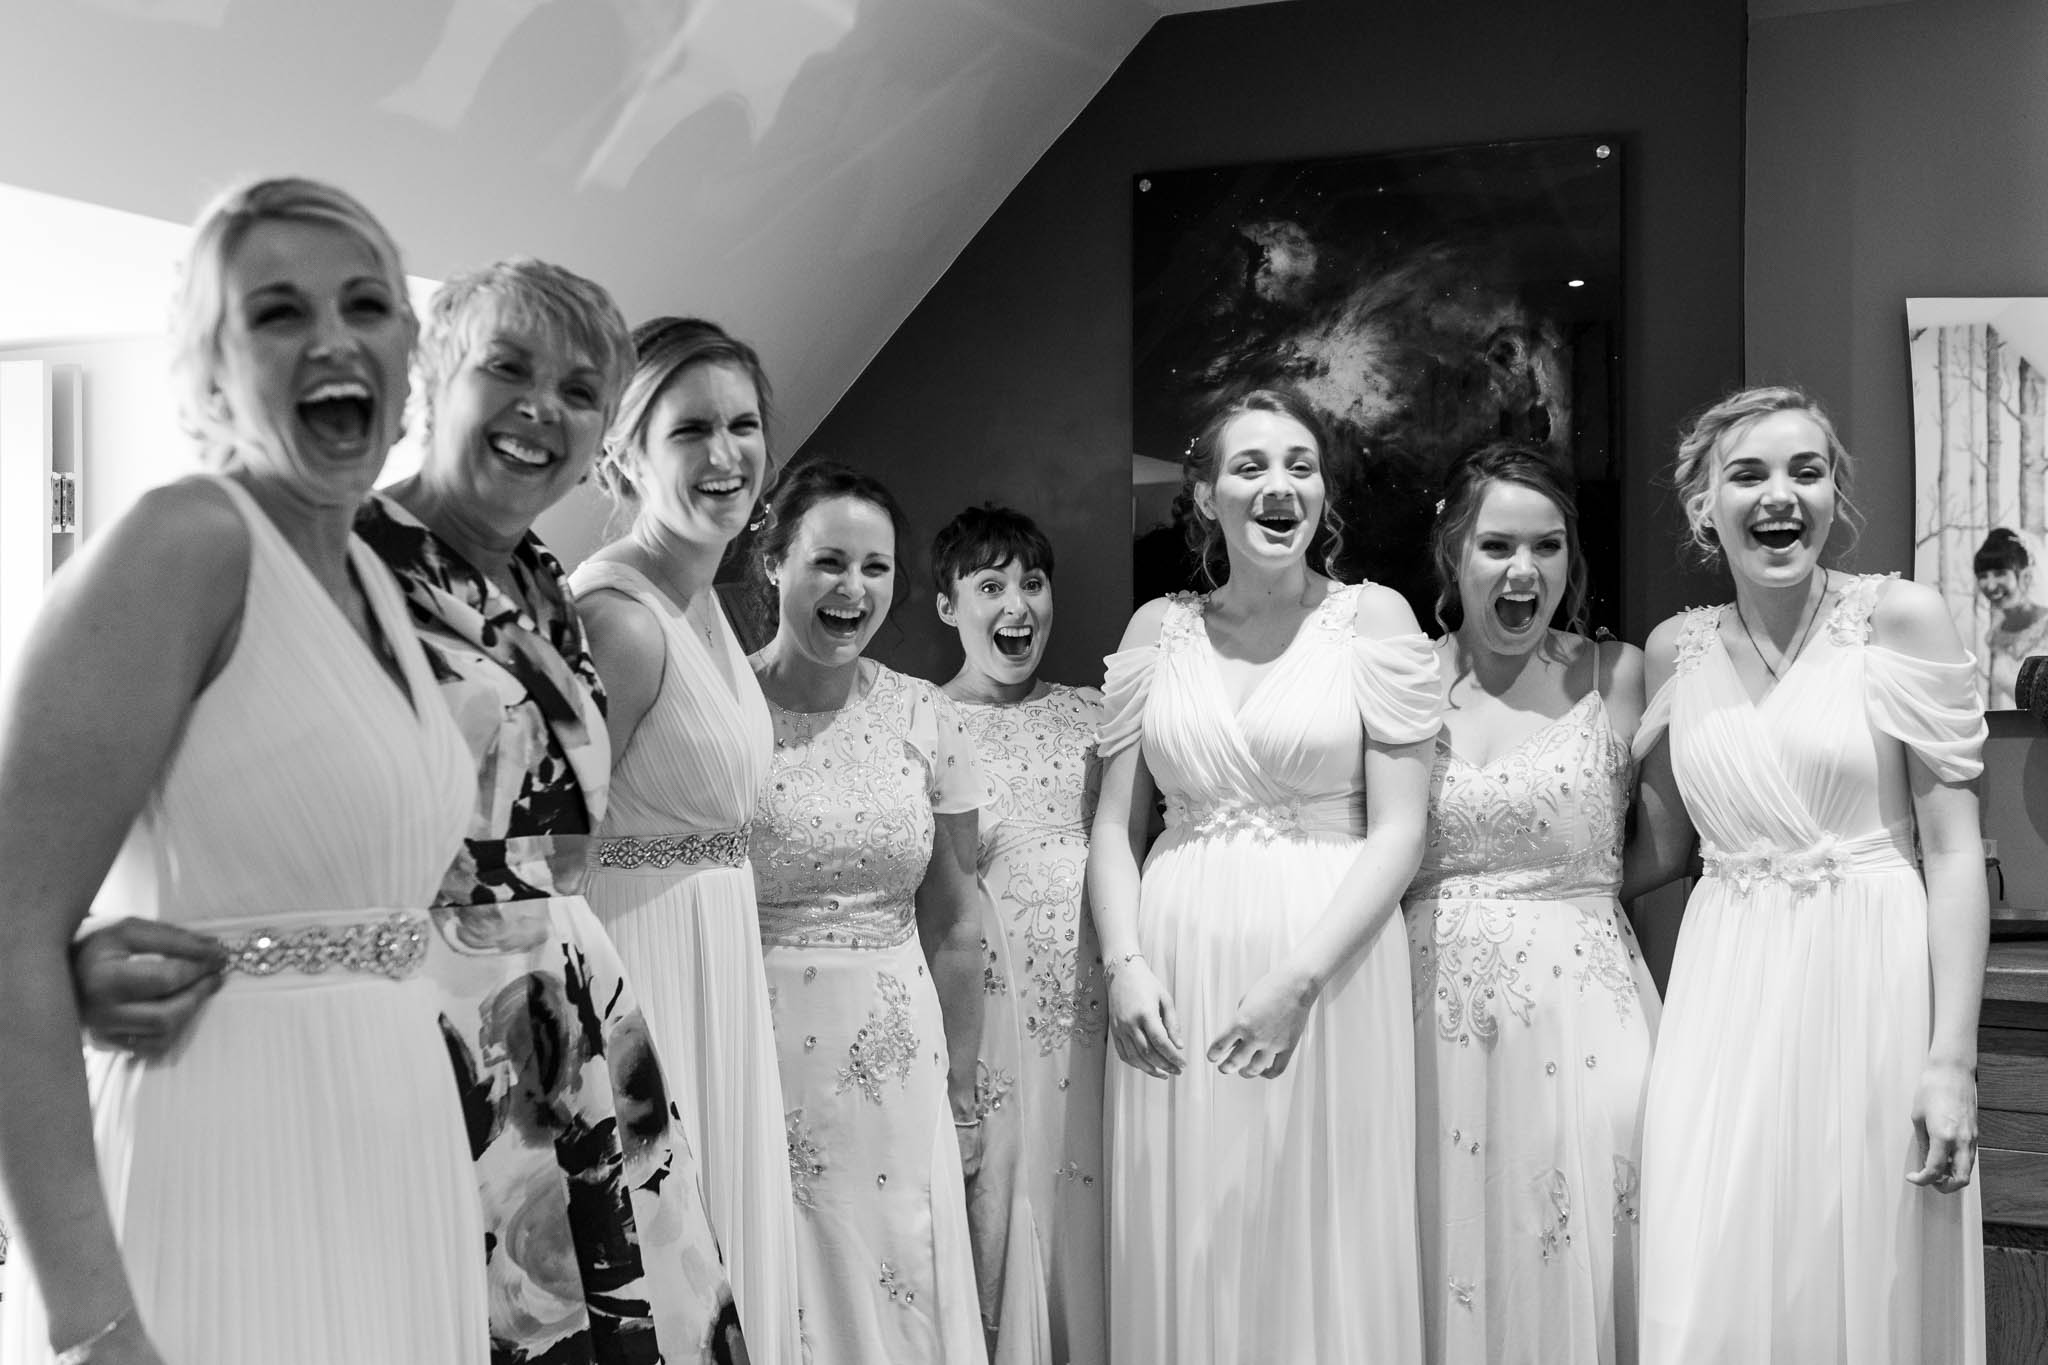 bridesmaids looking shocked and excited when they see the bride